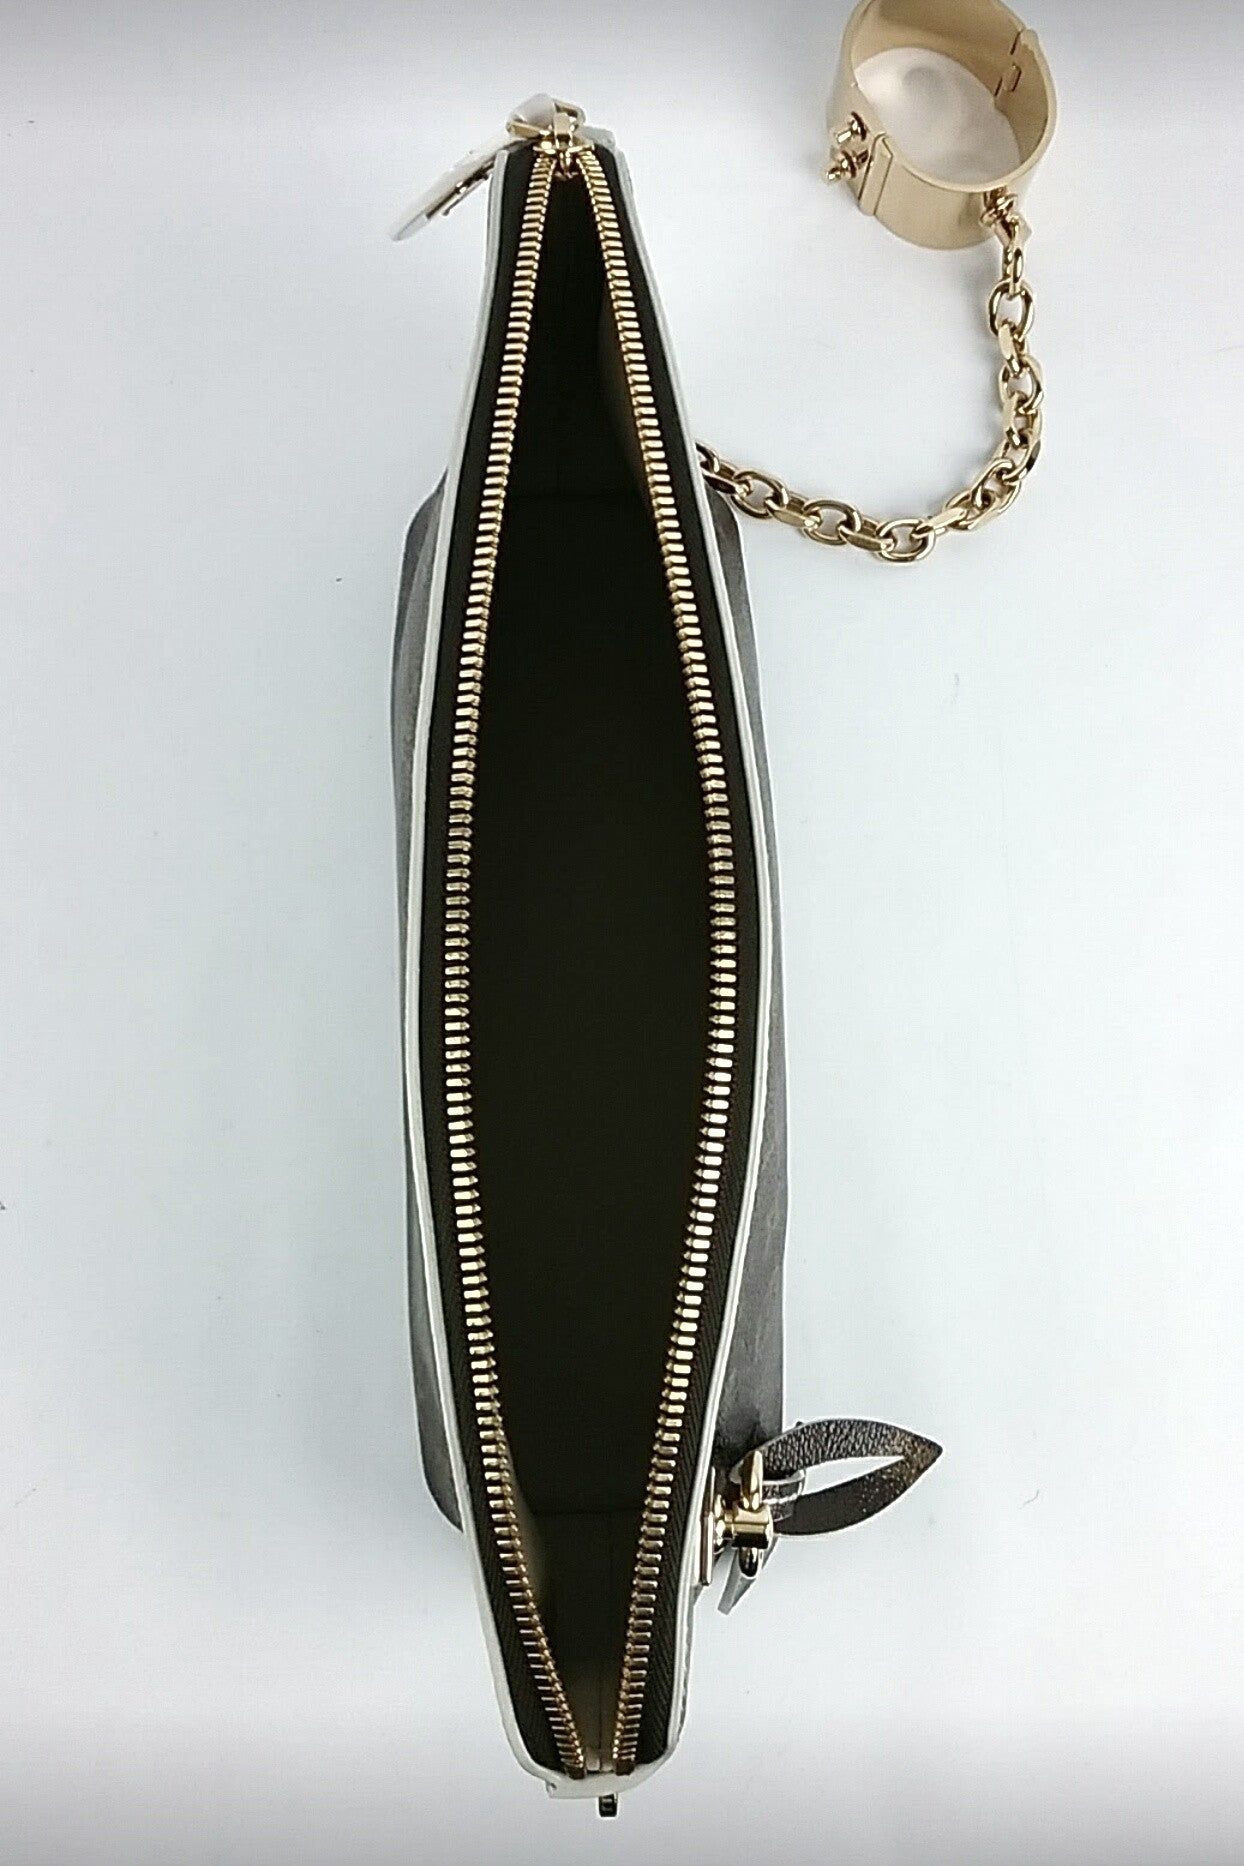 FW 2011/12 Monogram Handcuff Clutch